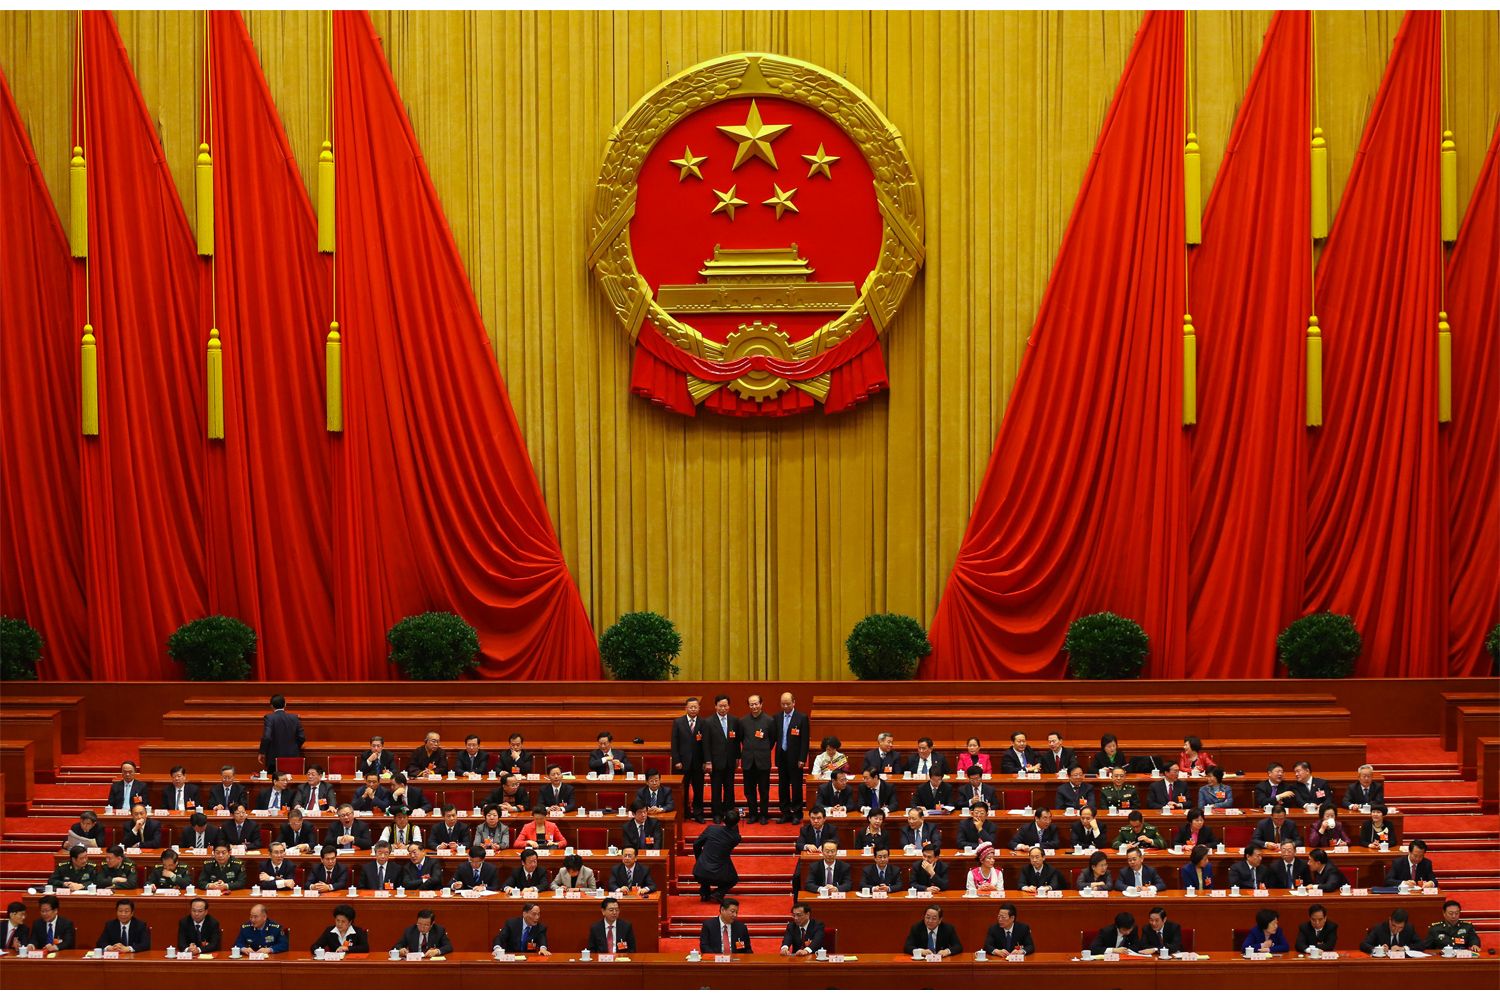 Deputies take a group photo on the rostrum inside the Great Hall of the People before the First Session of the 12th NPC begins, March 13, 2013. President Xi Jinping is seated in the first row, center.